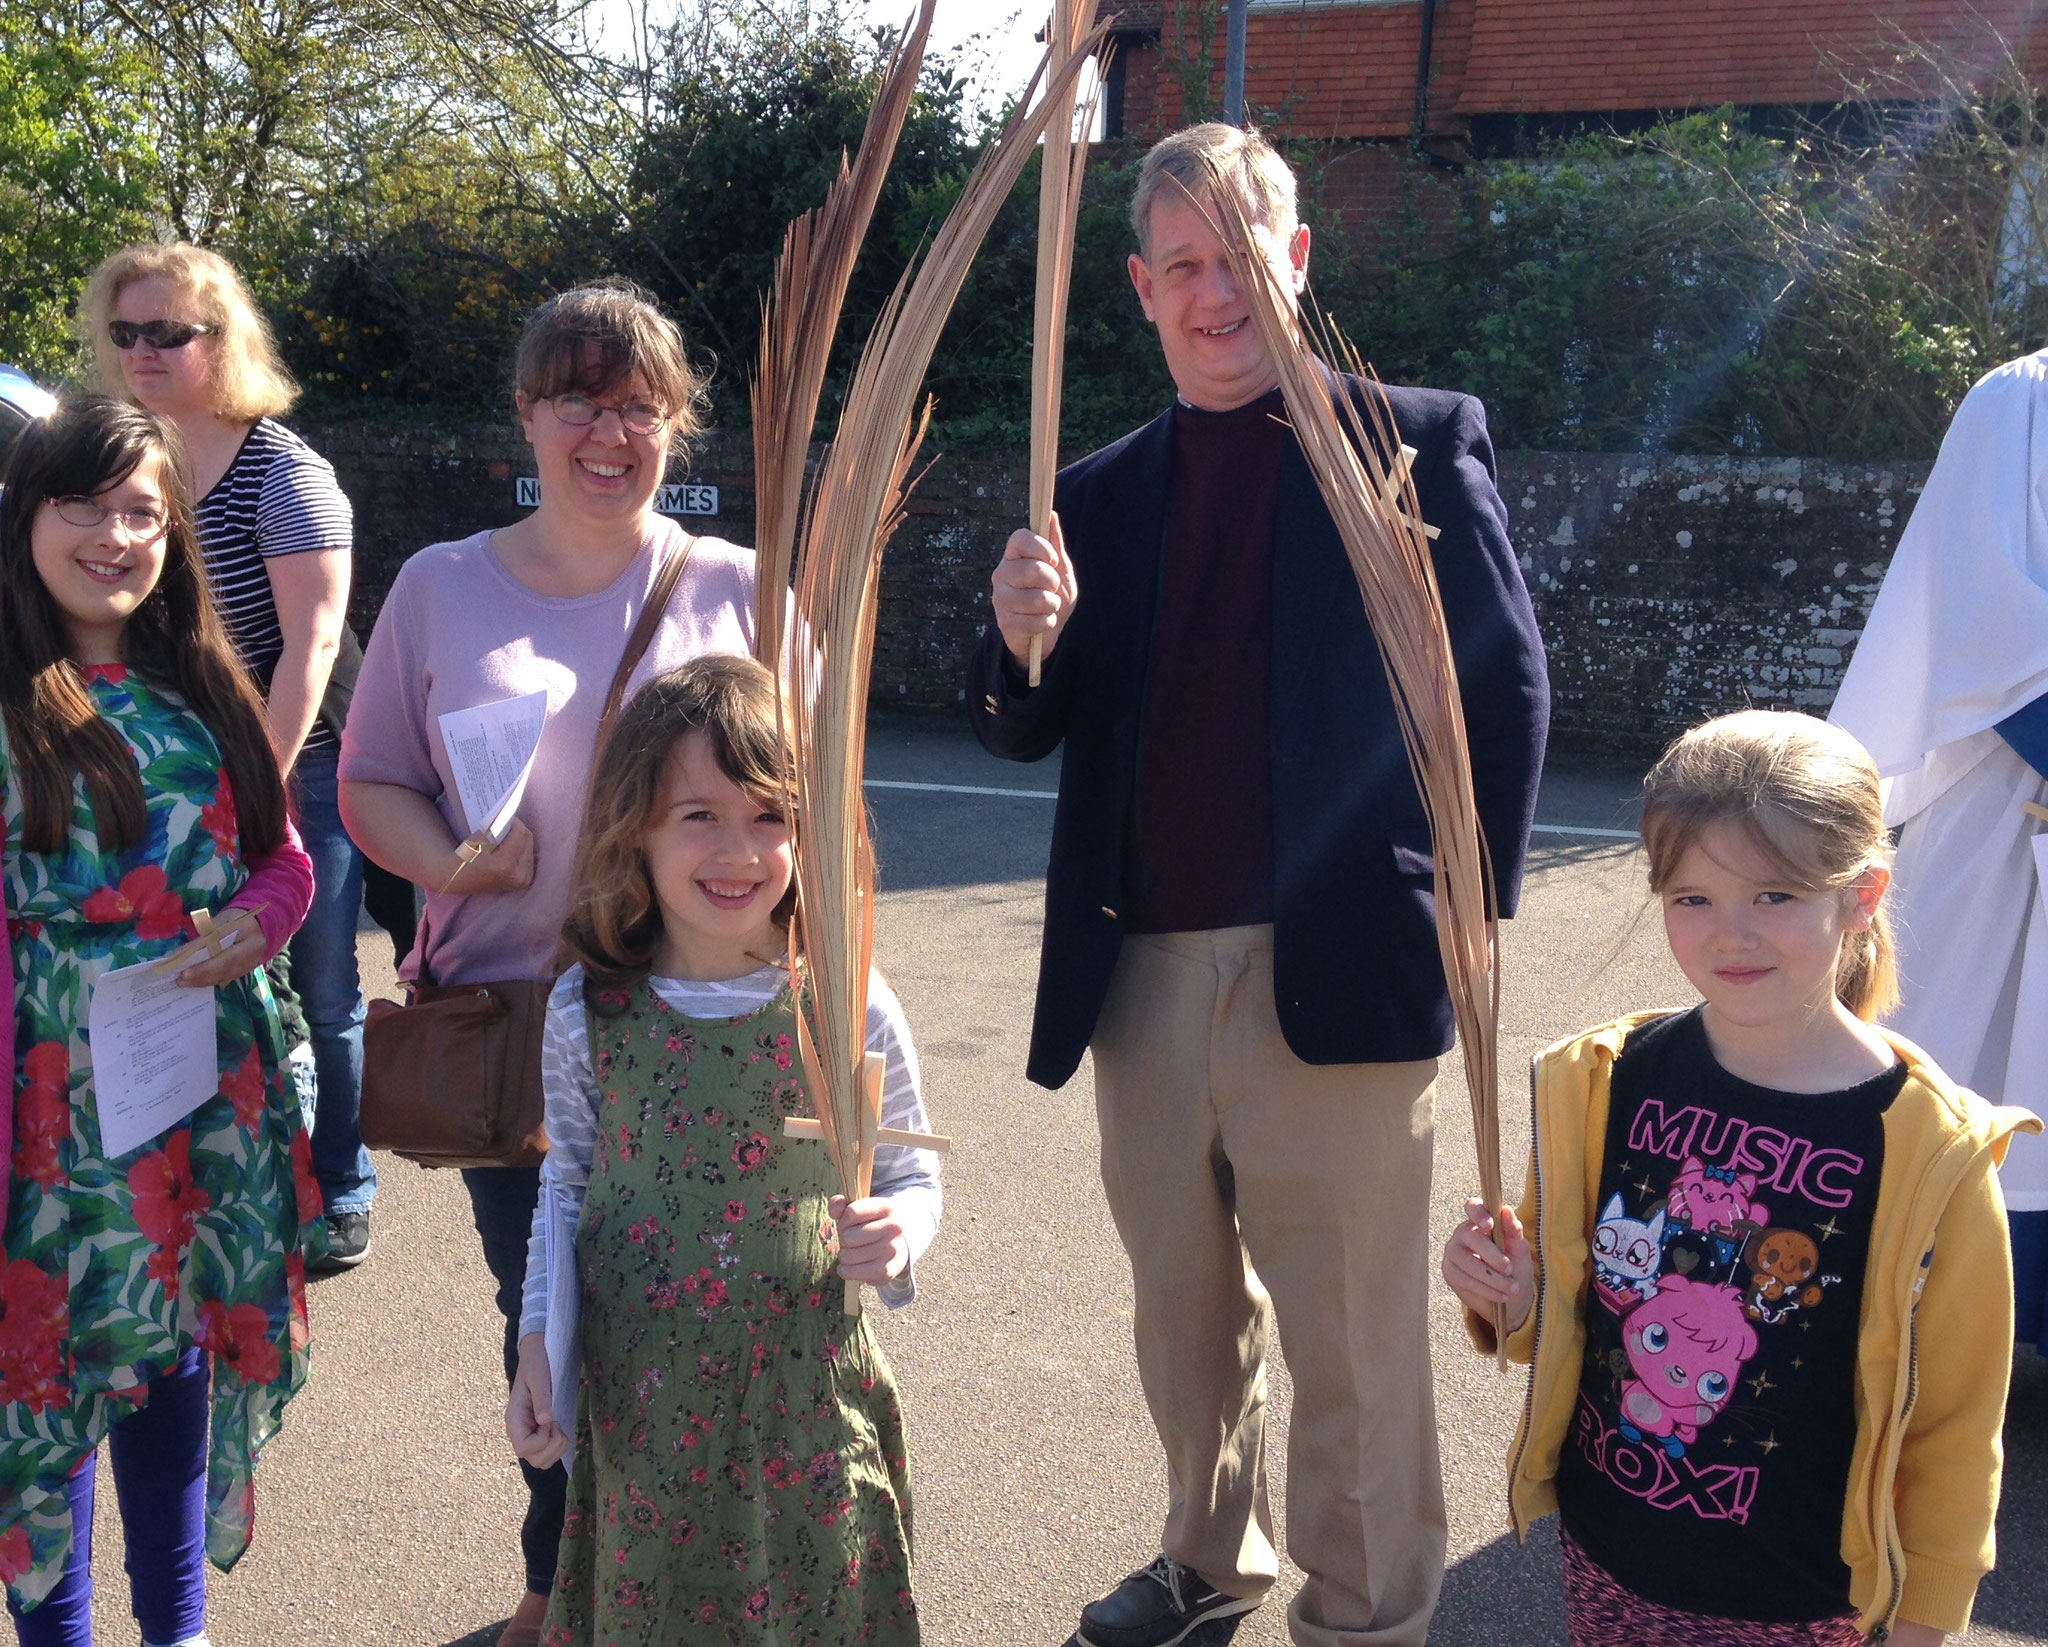 Palms at the ready